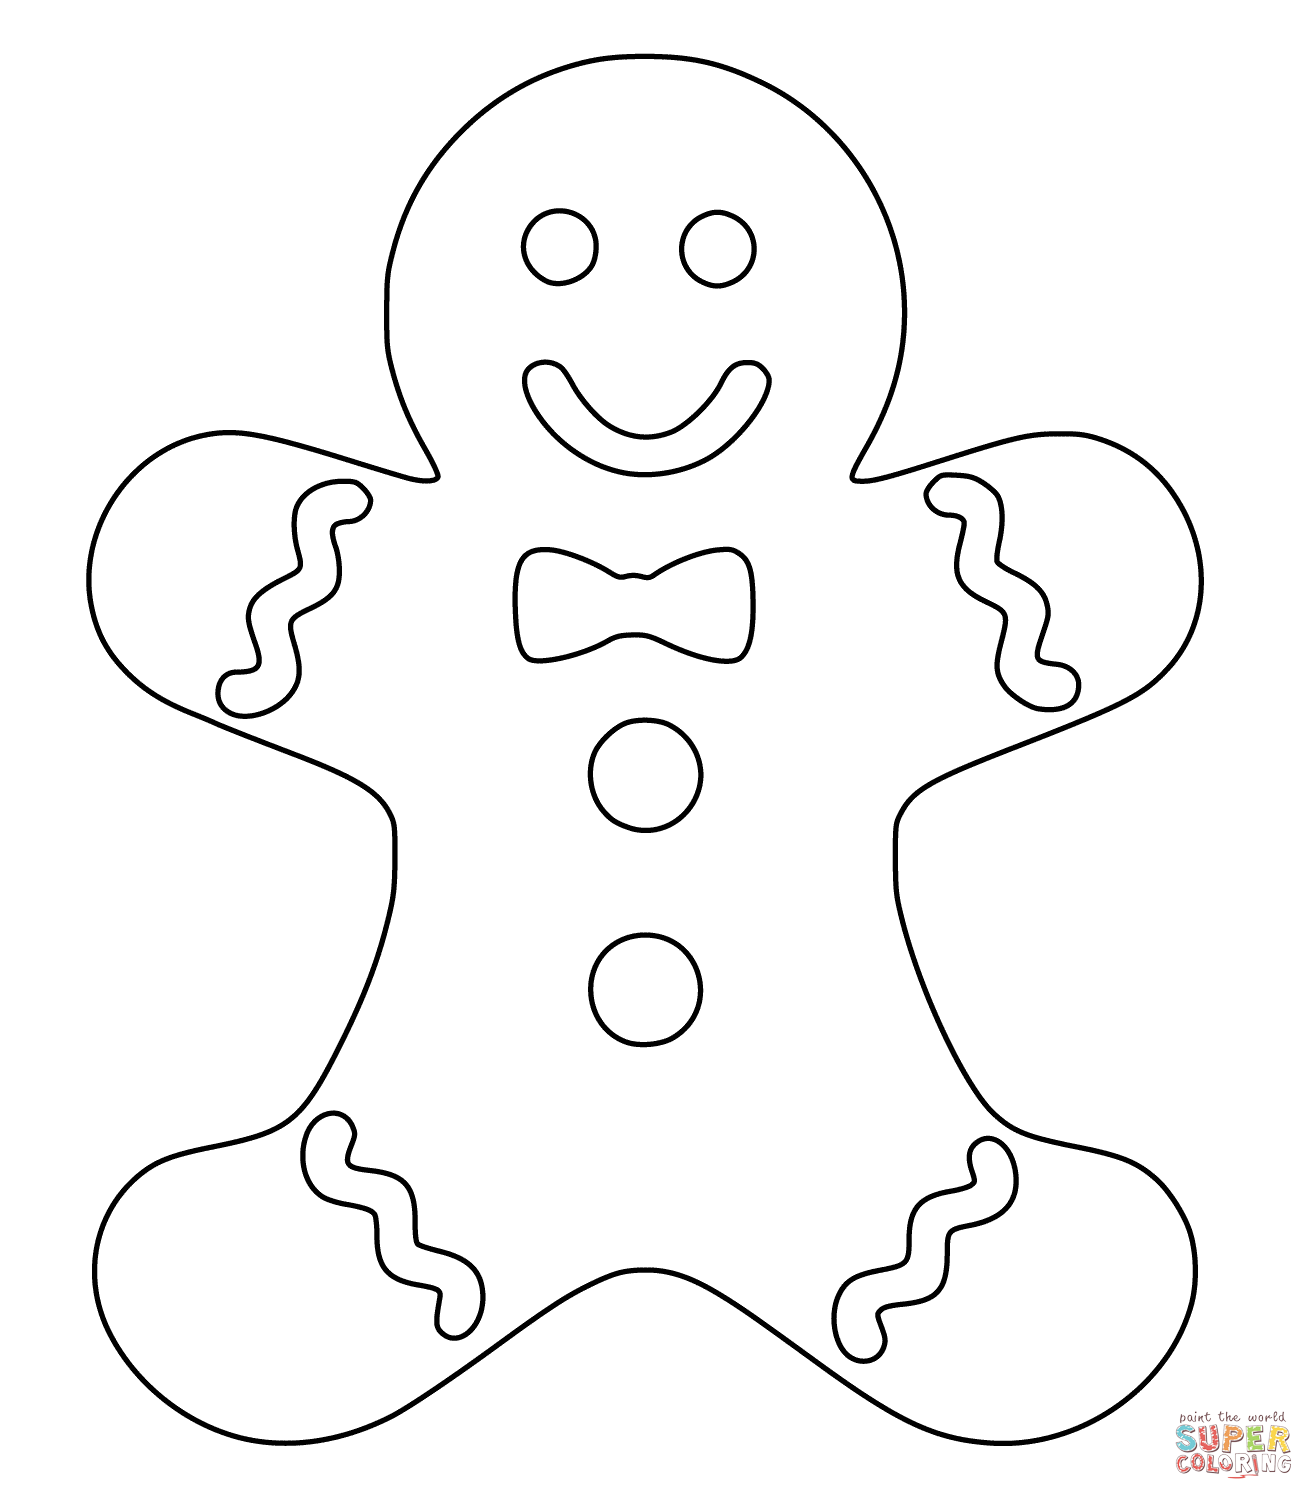 gingerbread man outline the gingerbread man storytelling baking and creating gingerbread man outline